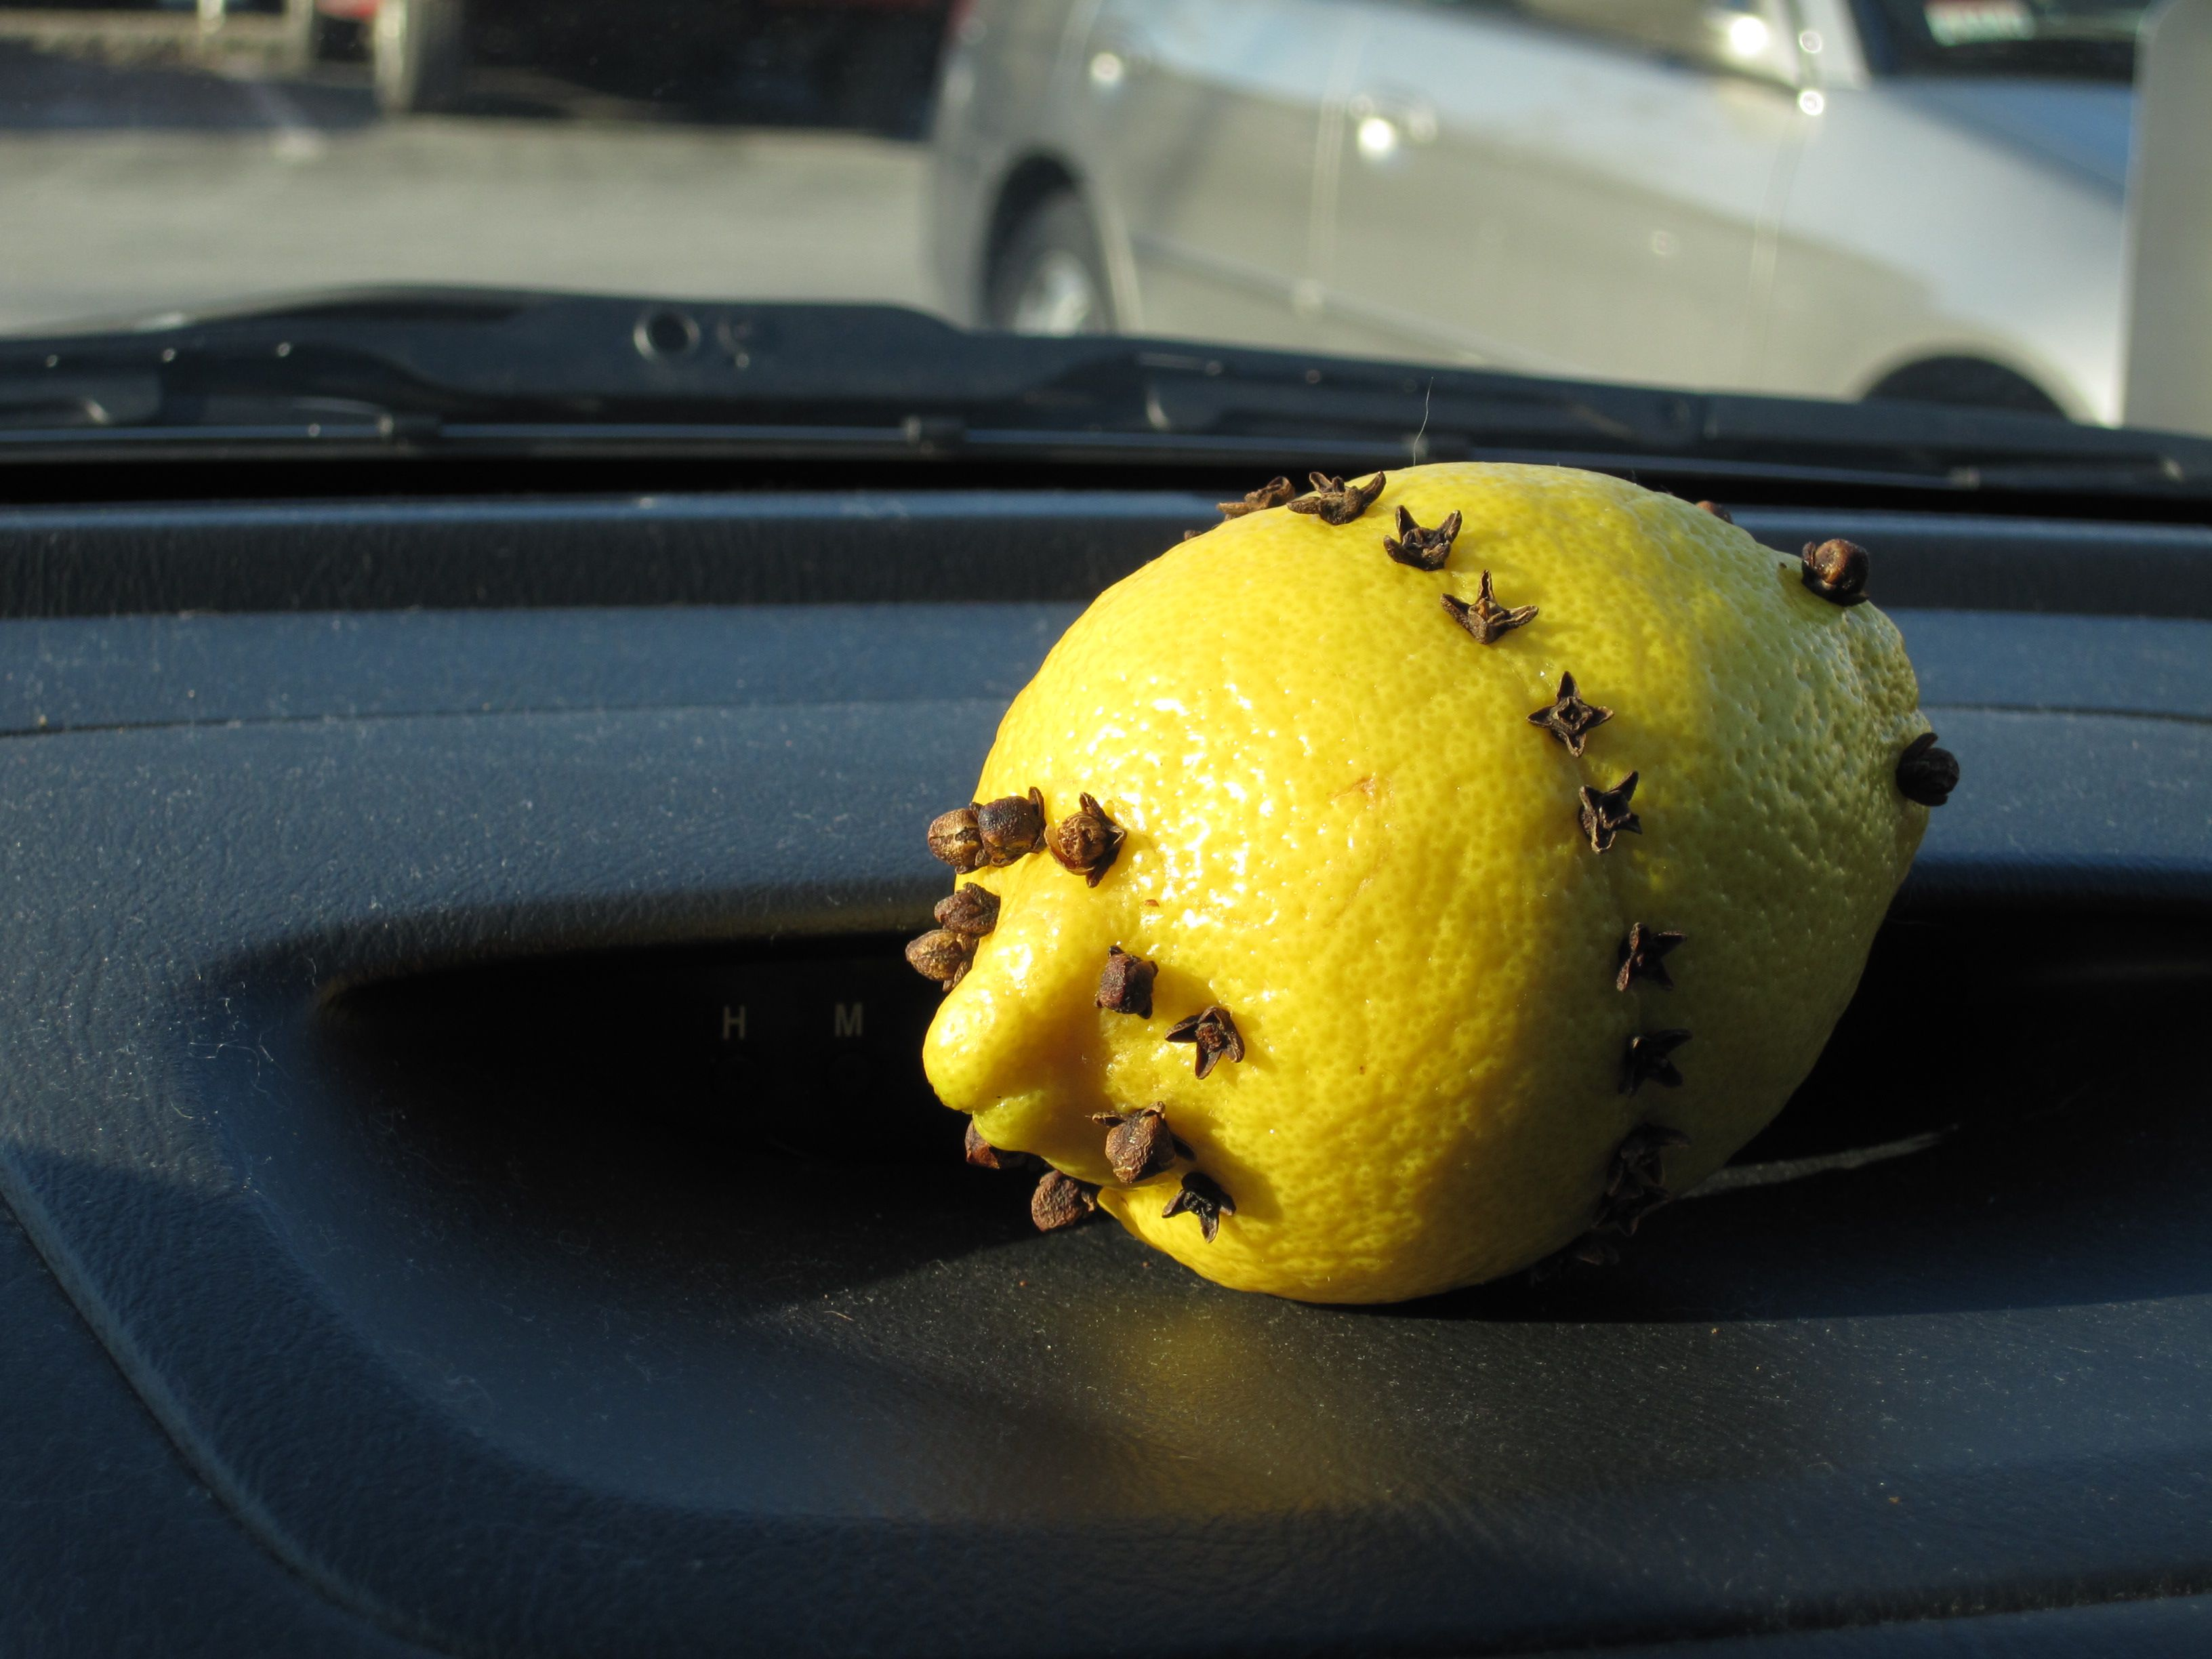 Lemon car freshener